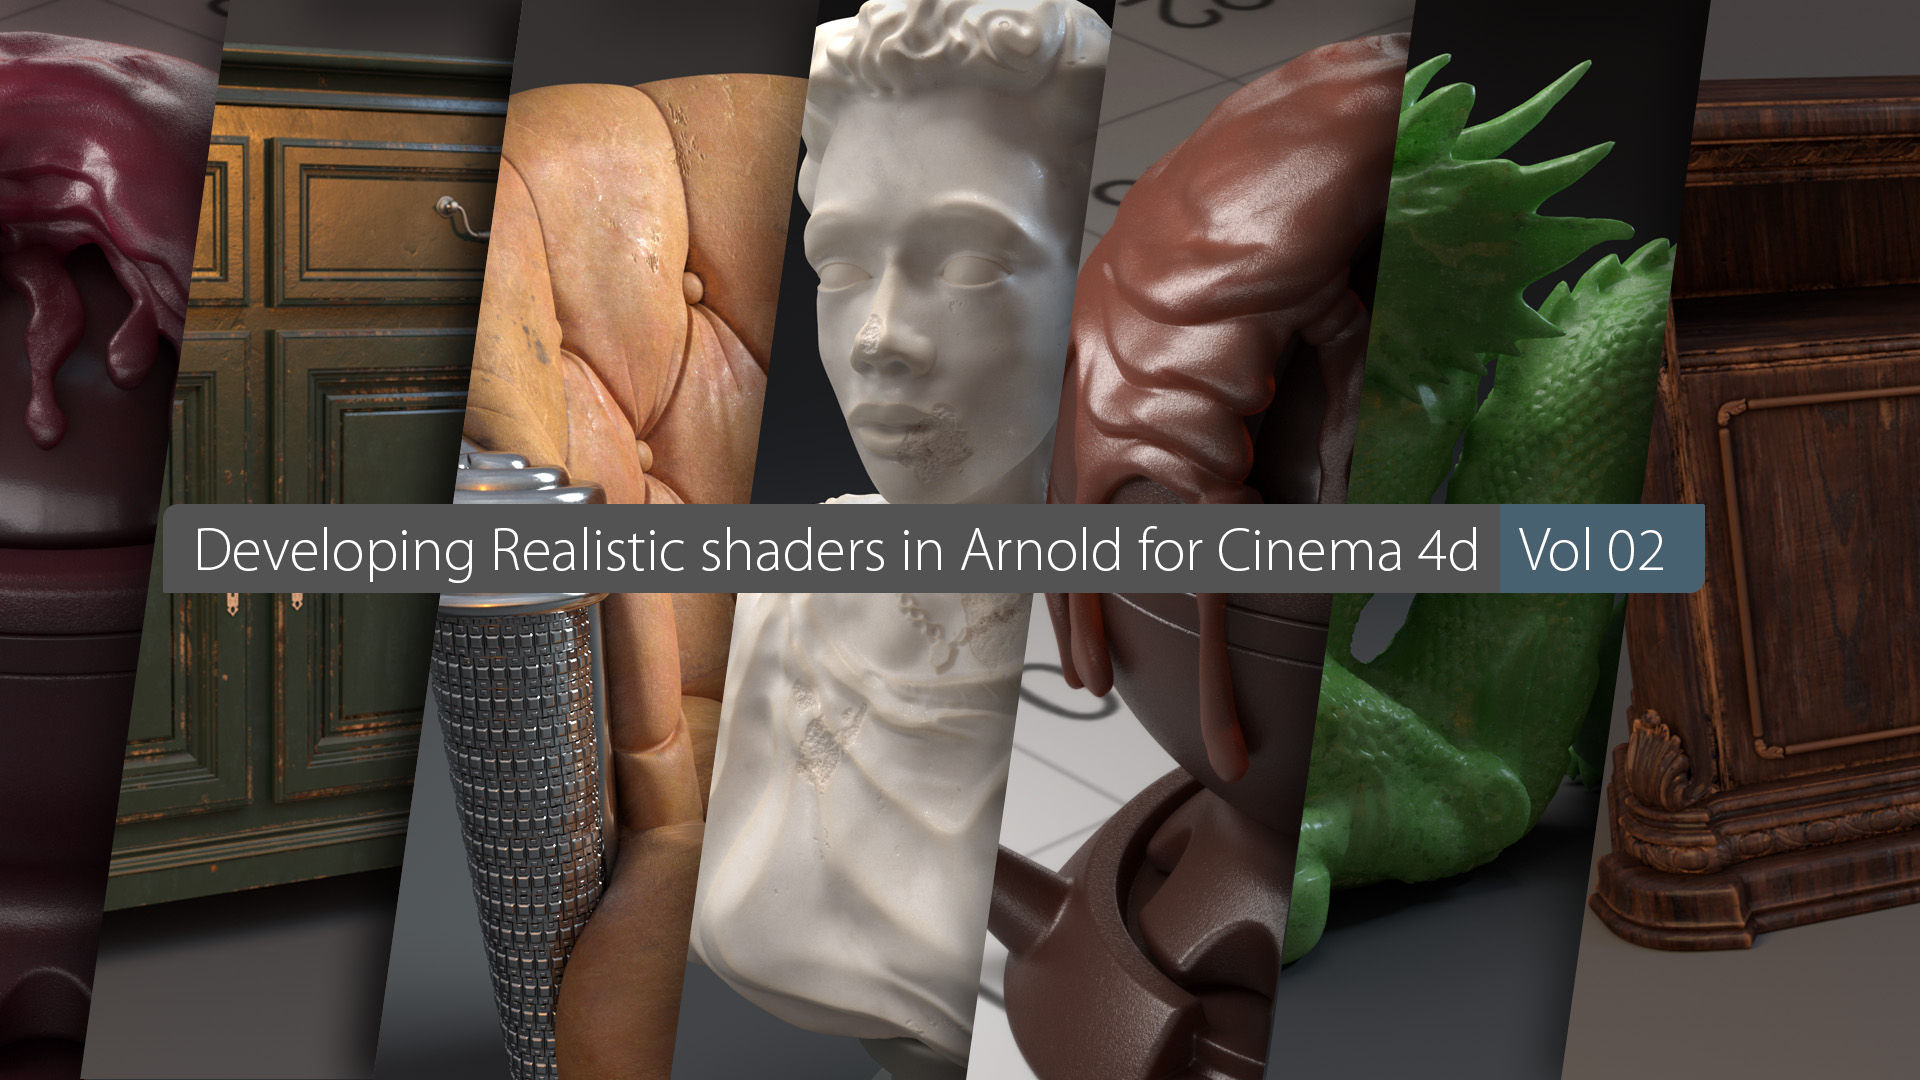 Developing Realistic Shaders In Arnold For Cinema 4D Vol 02 - Cinema 4D Tutorial